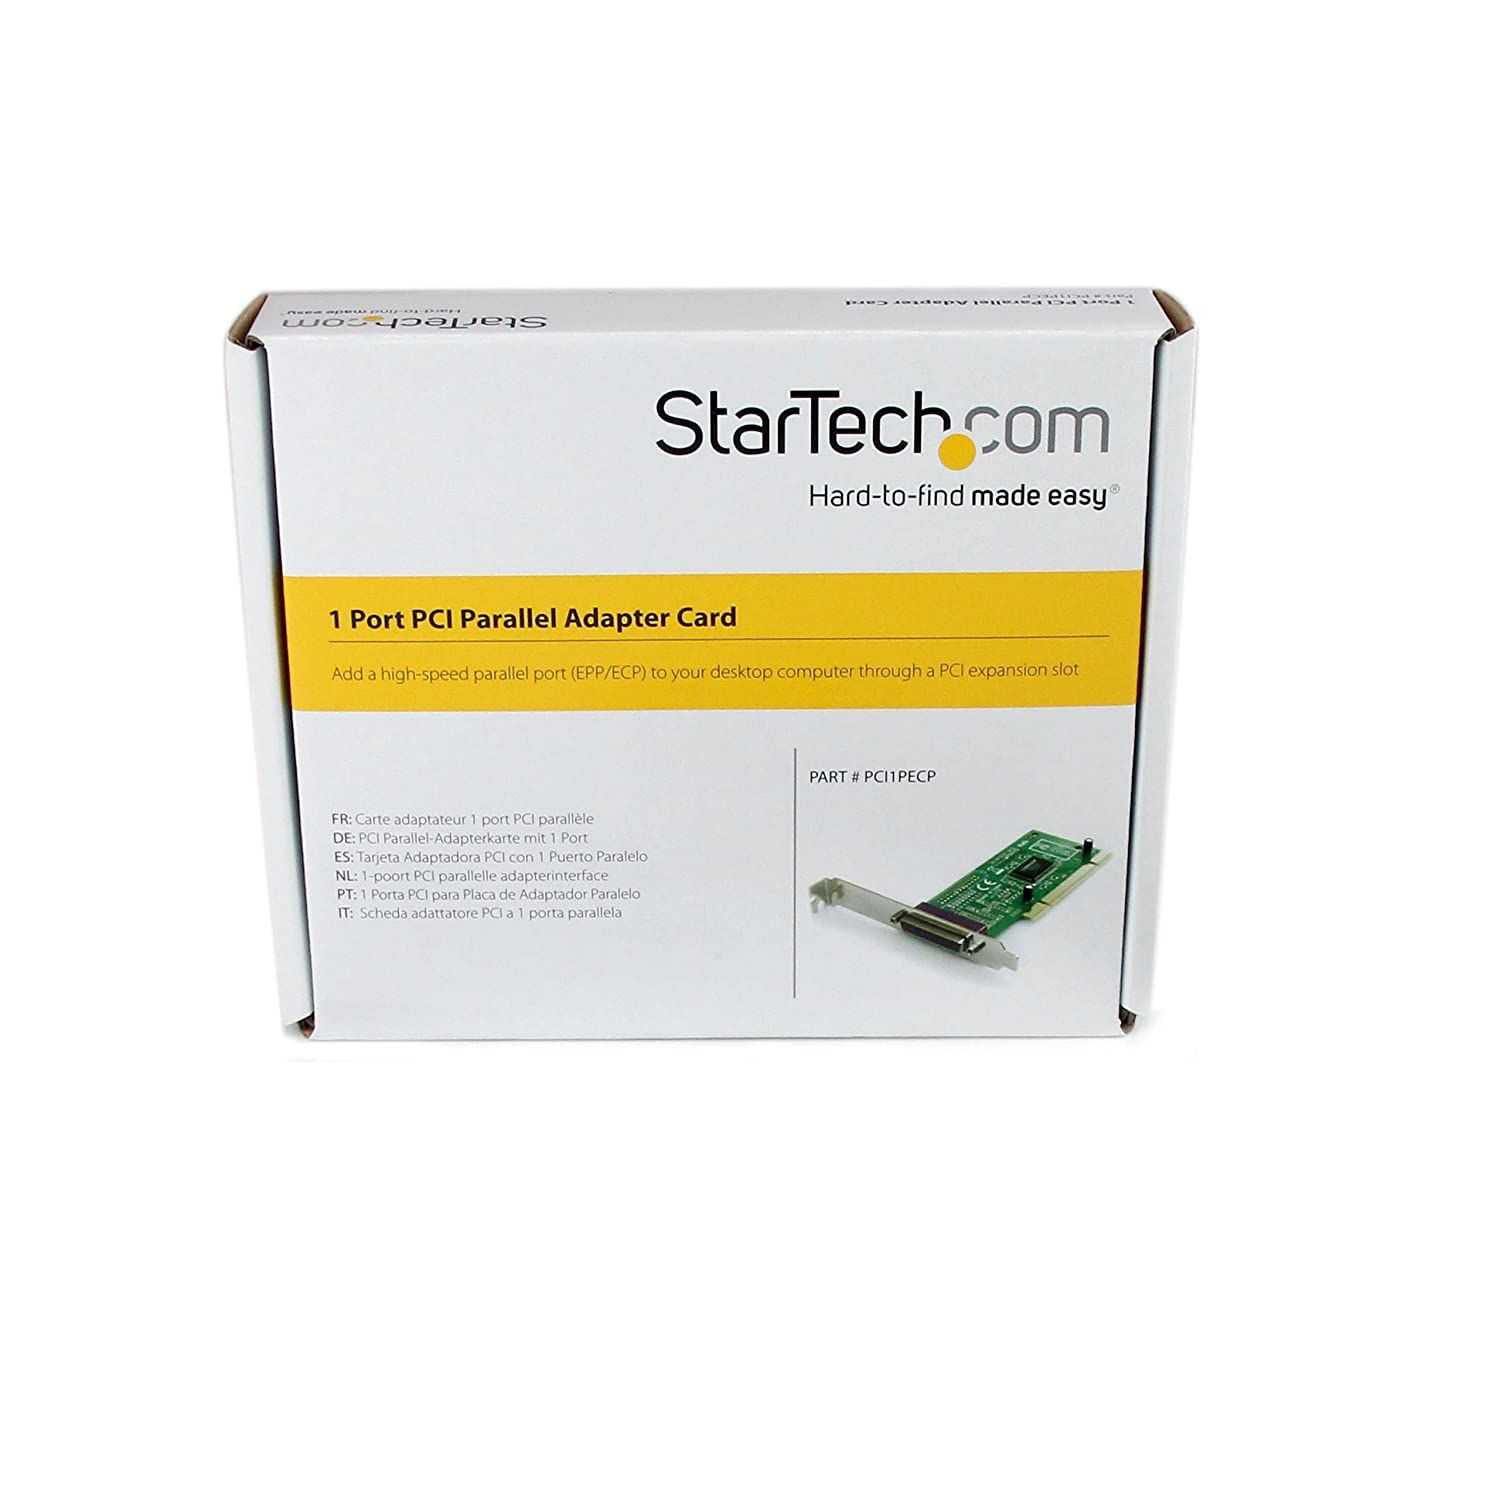 StarTech.com 1 Port PCI Parallel Adapter Card - Parallel adapter - PCI - IEEE 1284 - PCI1PECP